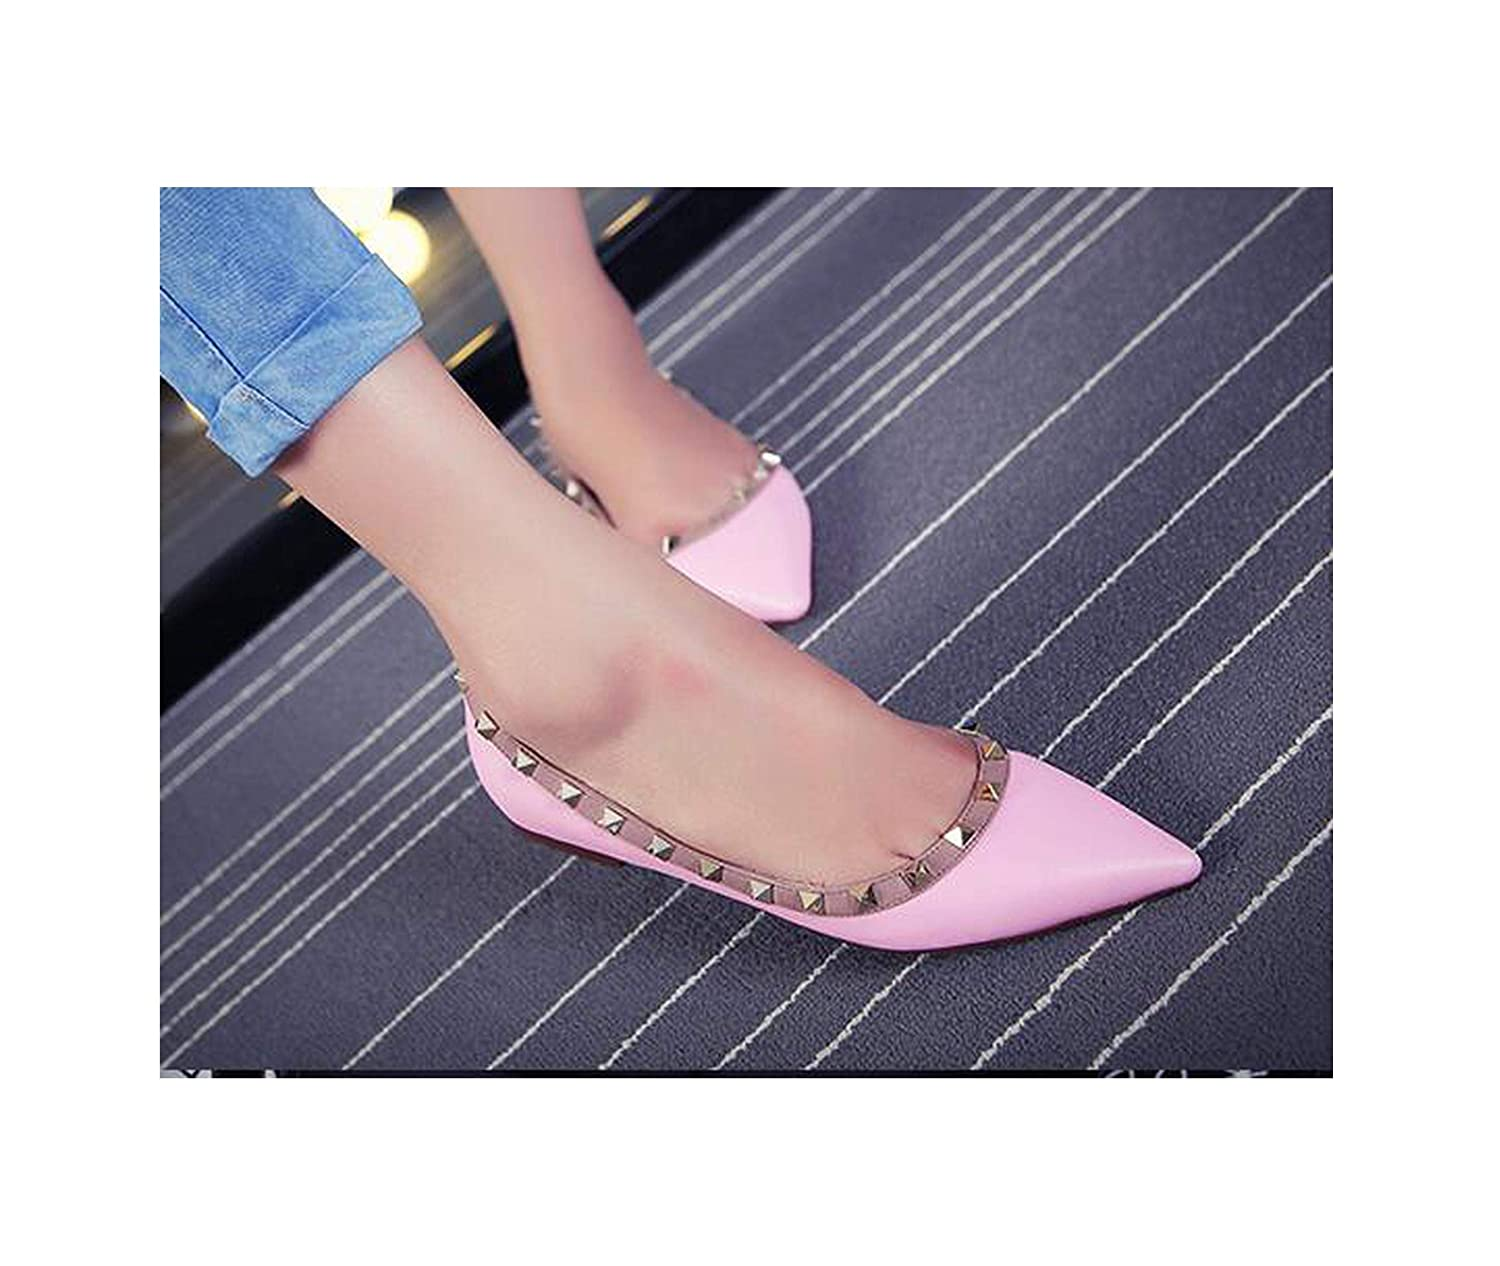 With logo4 FAT BABY Women's shoes Rhinestone Pointed Flat shoes Women's Rivet Pointed-Toe shoes Crystal Wedding shoes